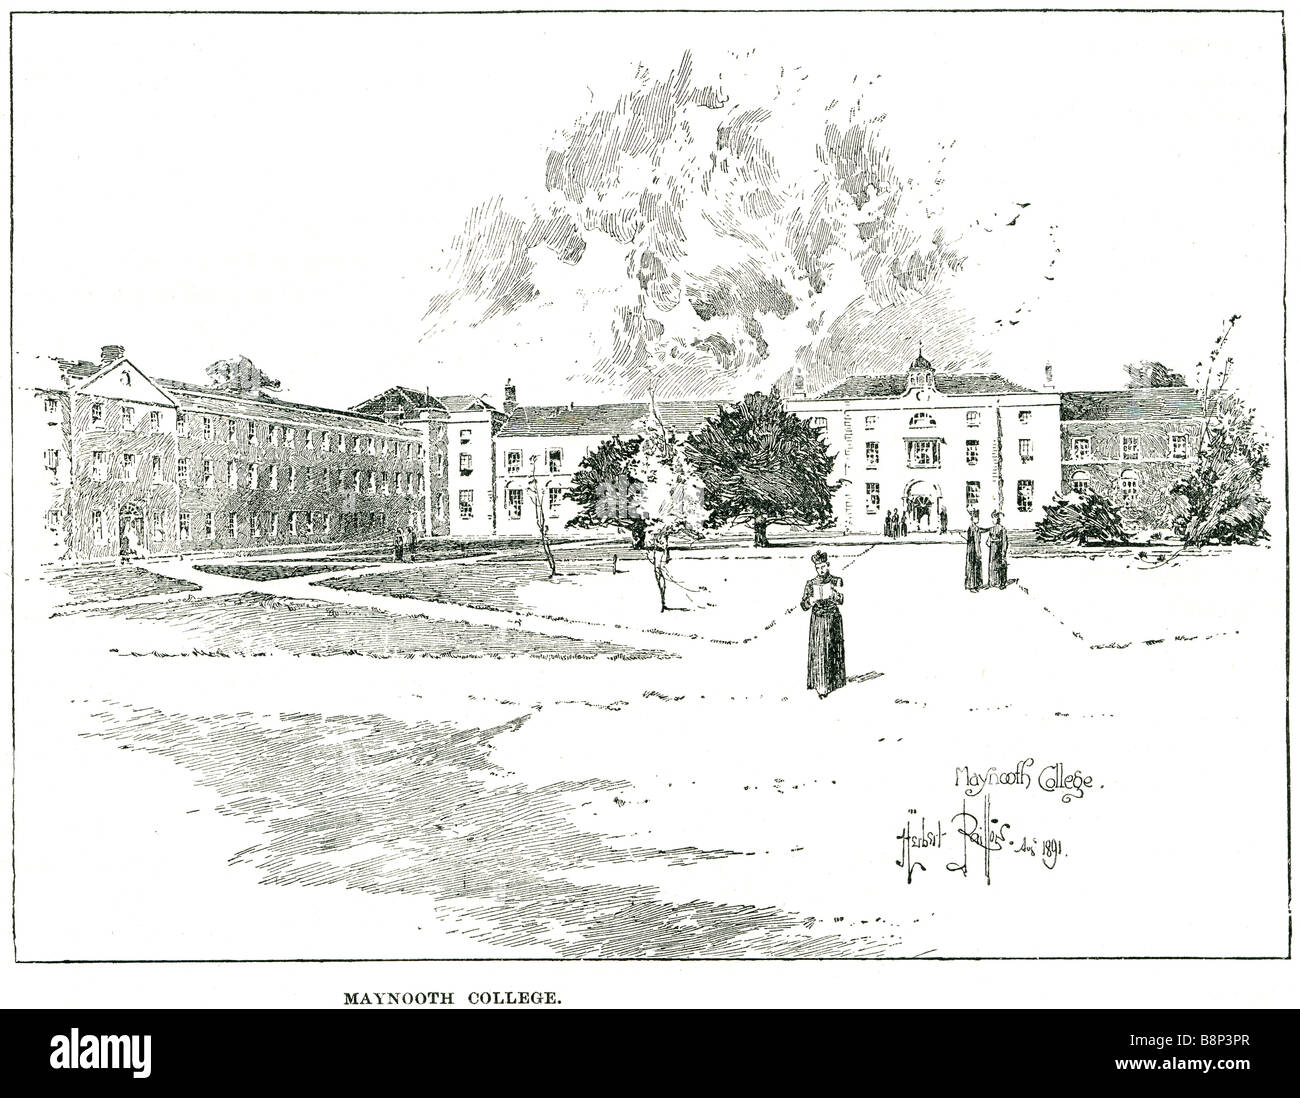 maynooth college St Patrick's National Seminary Ireland University  1840 - Stock Image